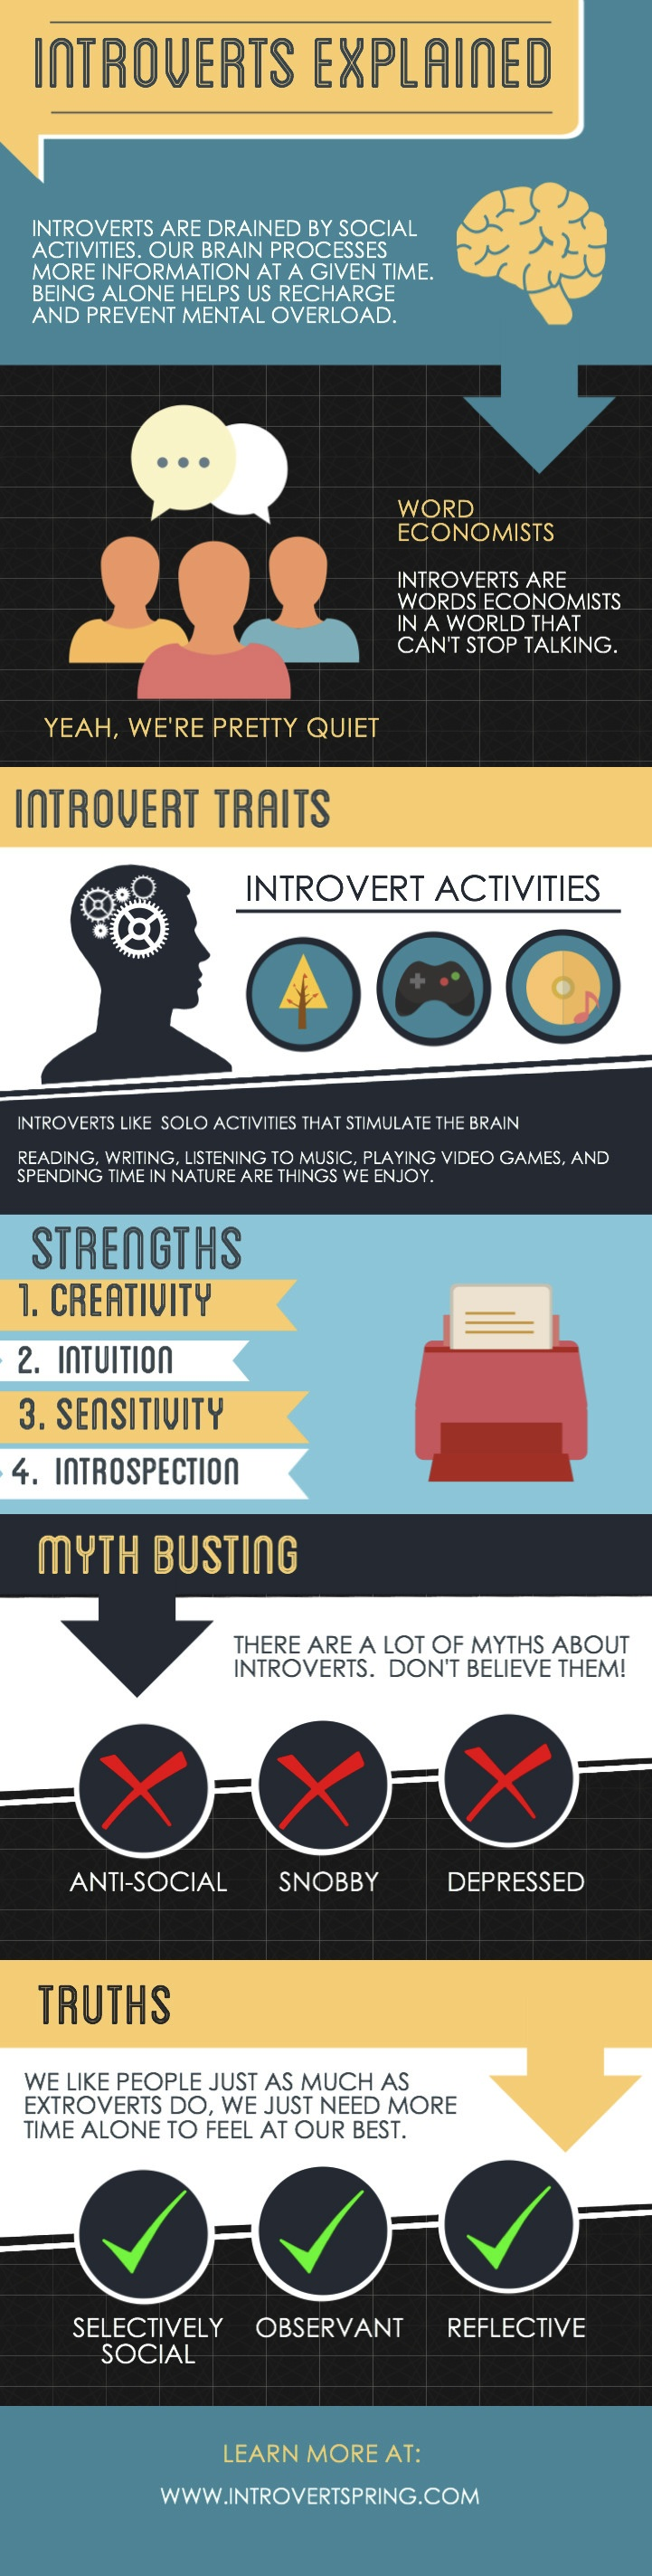 Introverts Explained Infographic